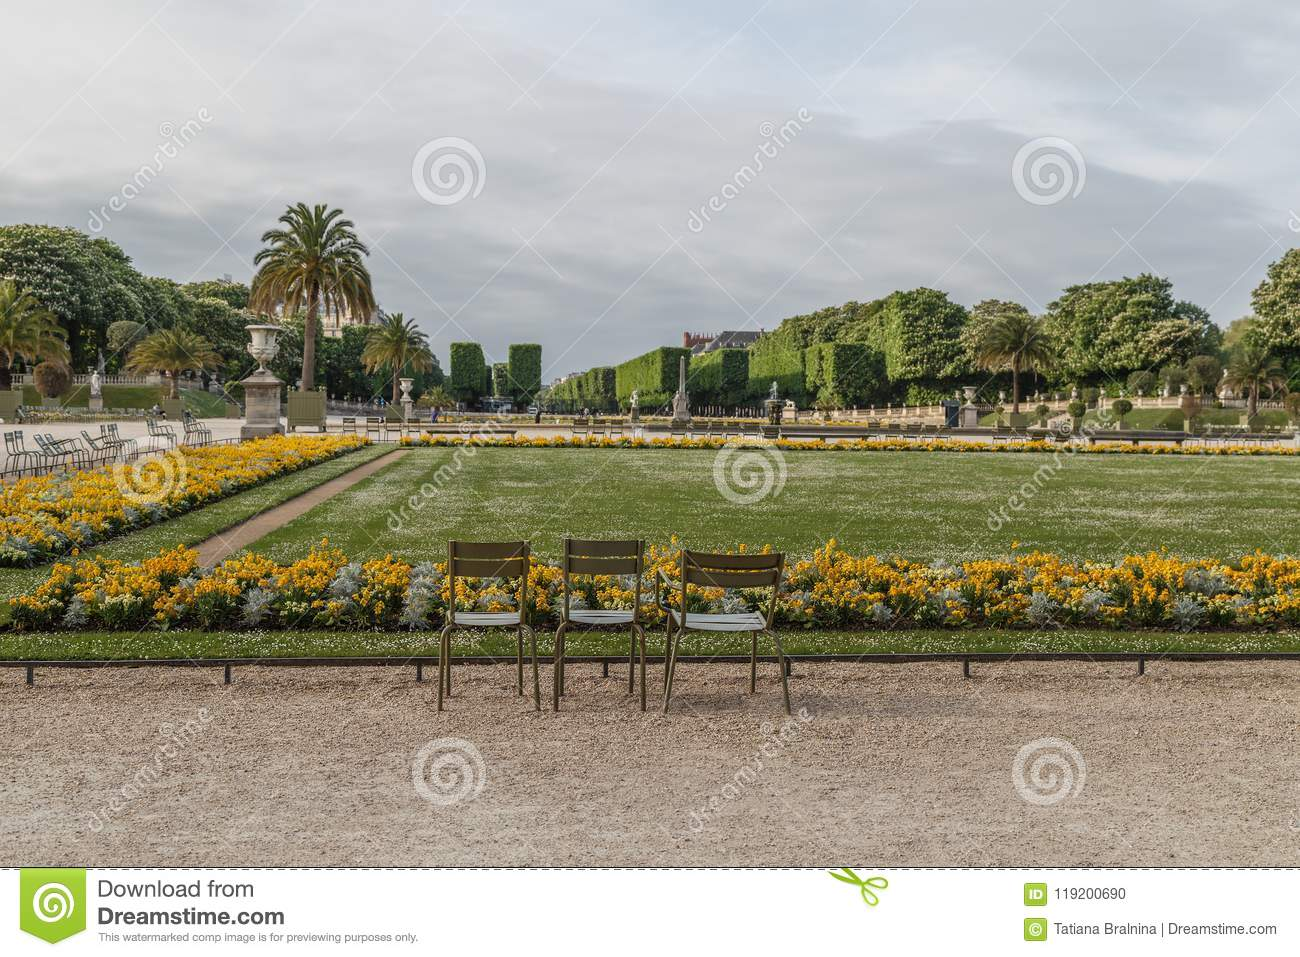 Luxembourg Garden in the spring